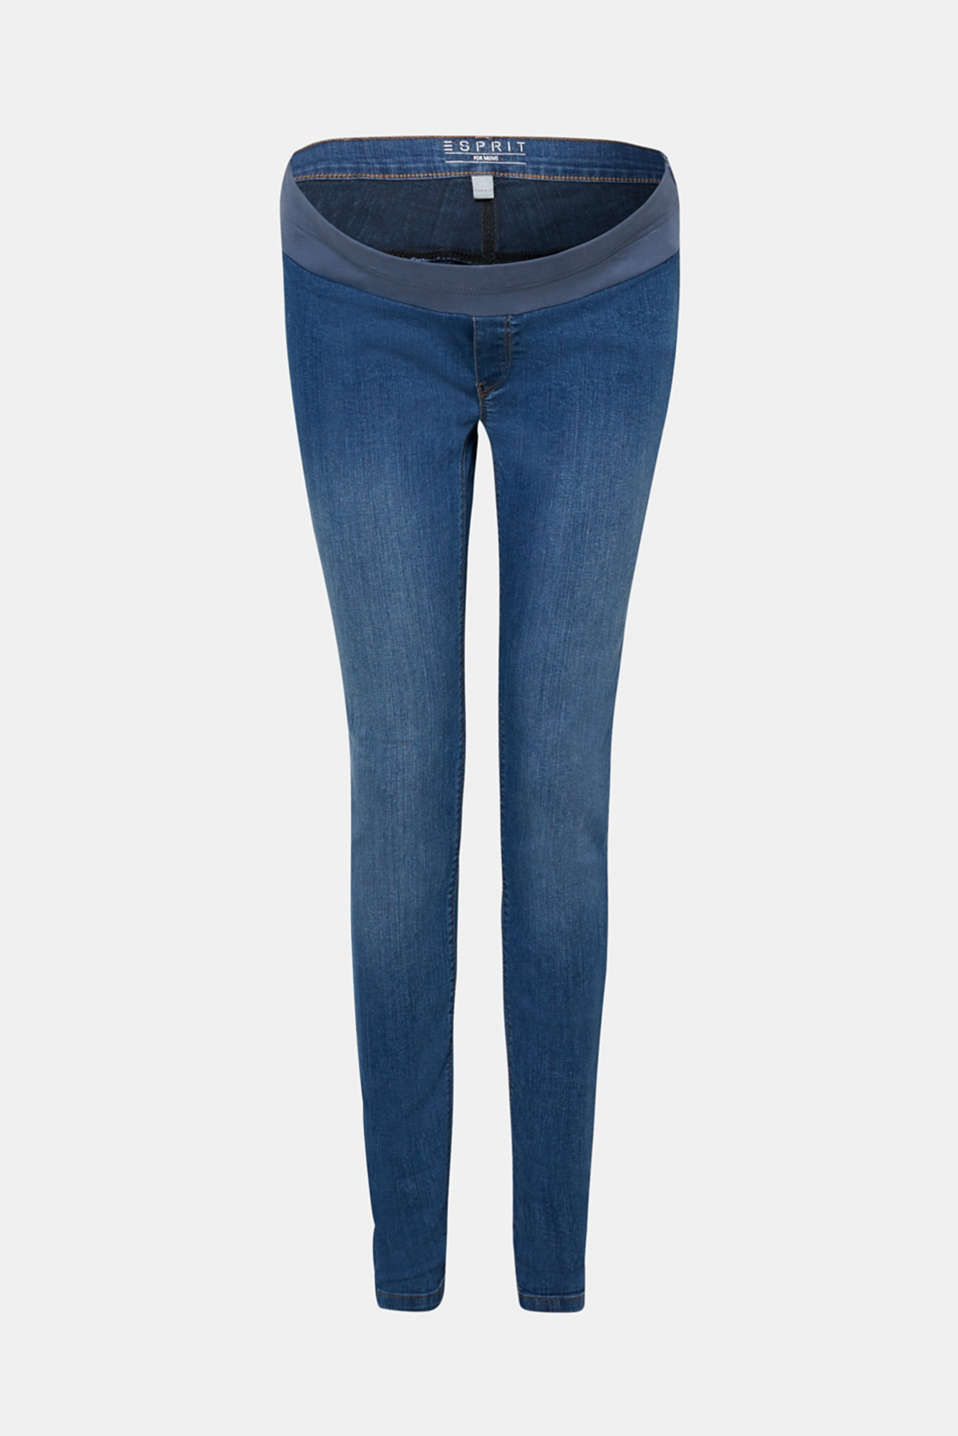 Esprit - Stretch jeggings with an under-bump waistband